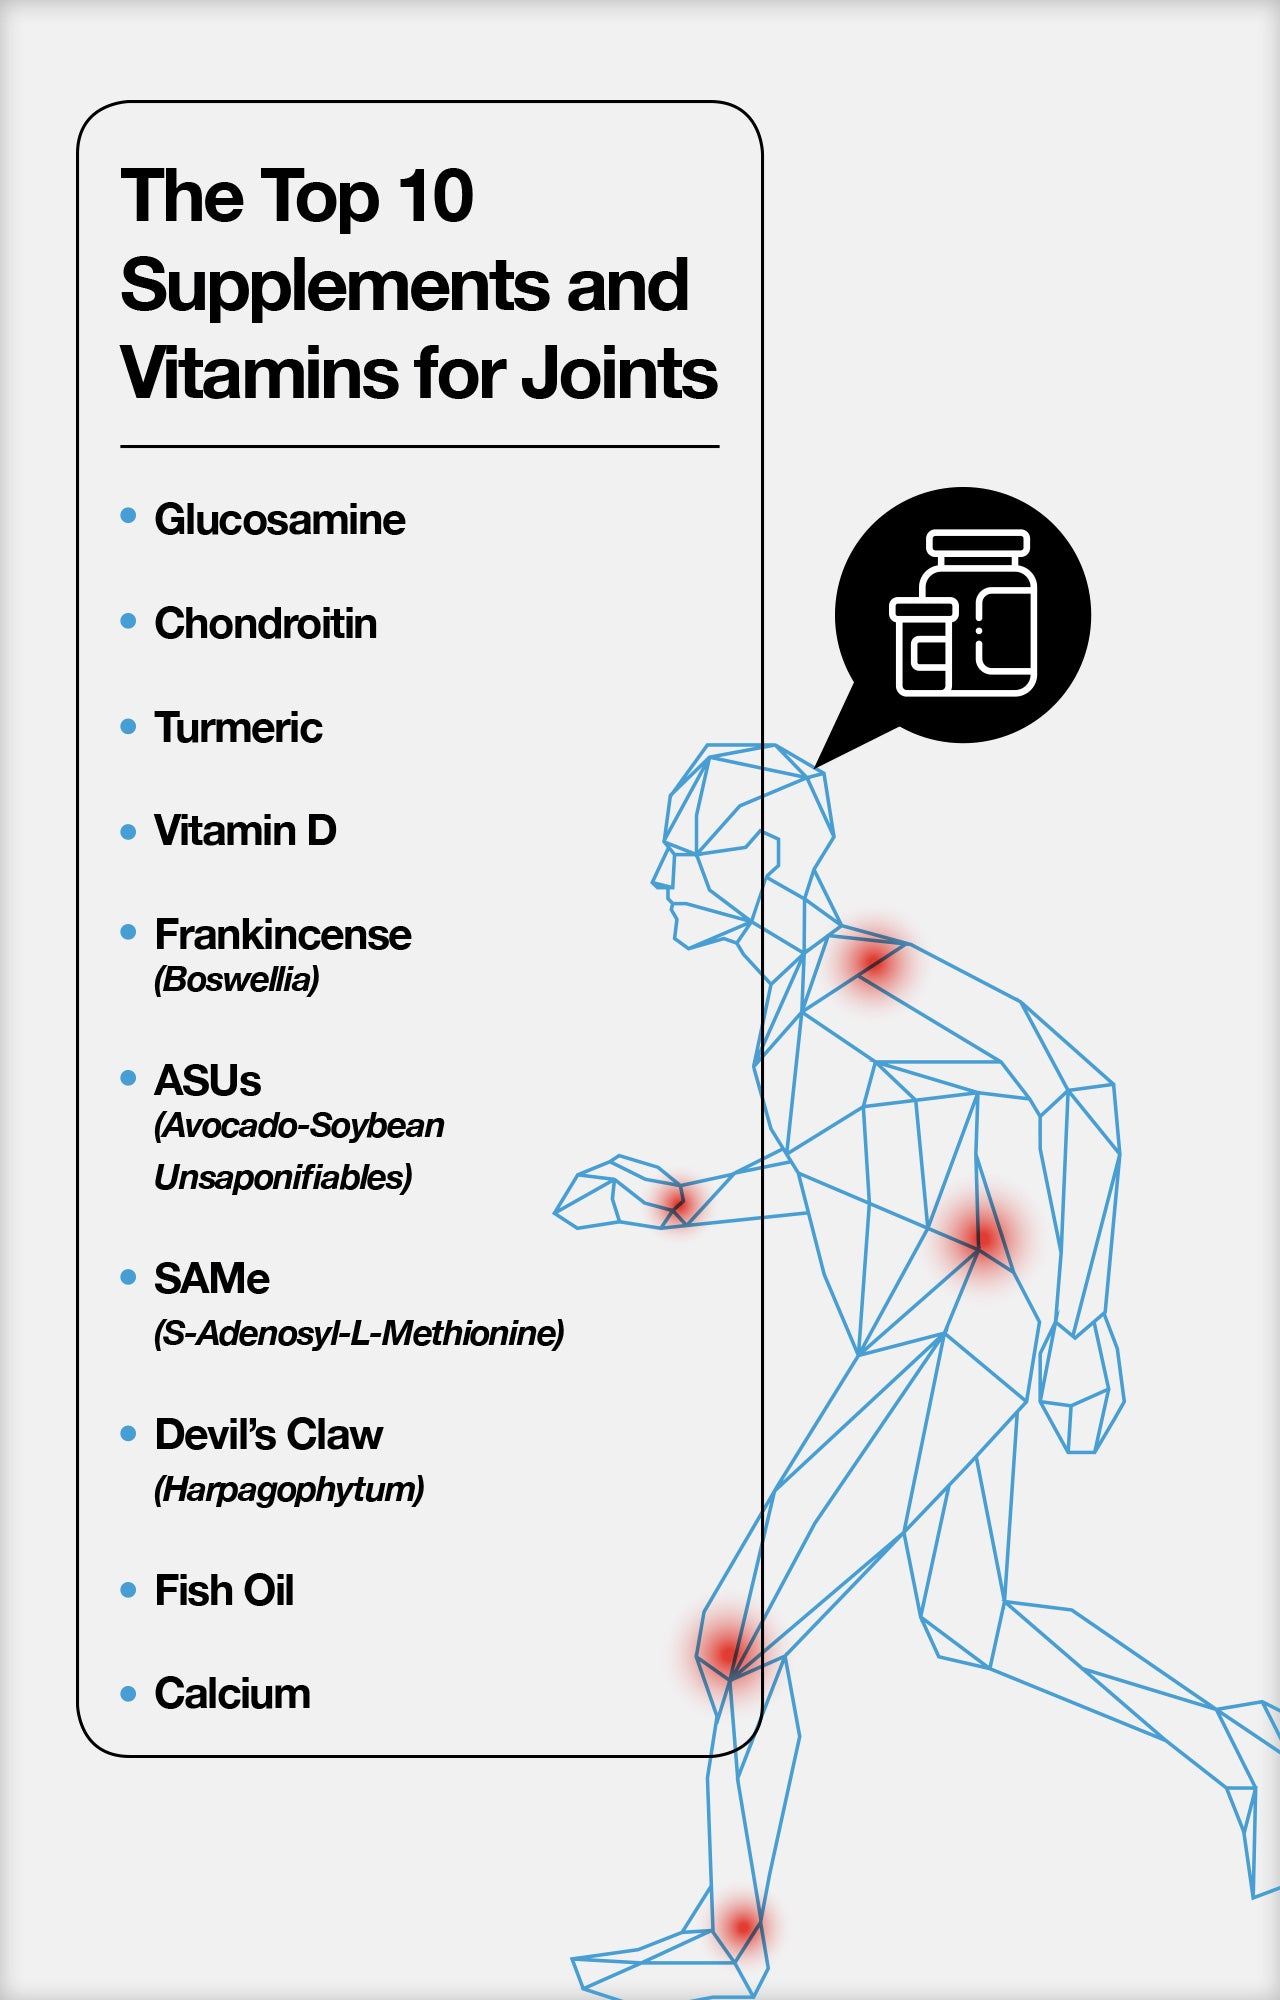 Top 10 supplements and vitamins for joints.